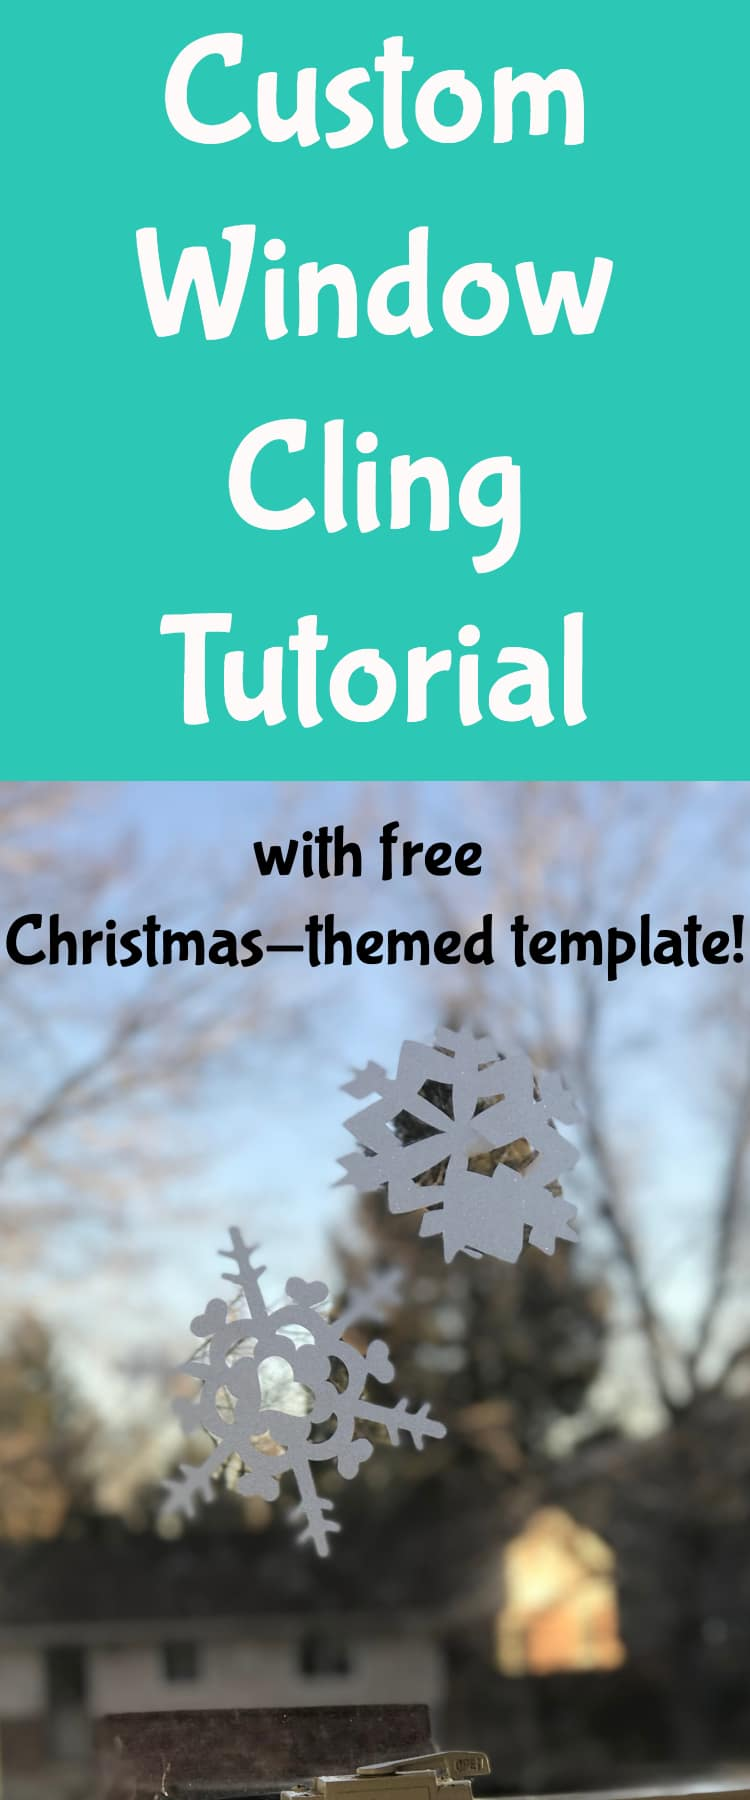 Window Clings / Christmas Window Clings / Snowflake Decoration / Cricut Crafts / Cricut Projects #Cricut #CricutCrafts #CricutProjects #CricutMaker